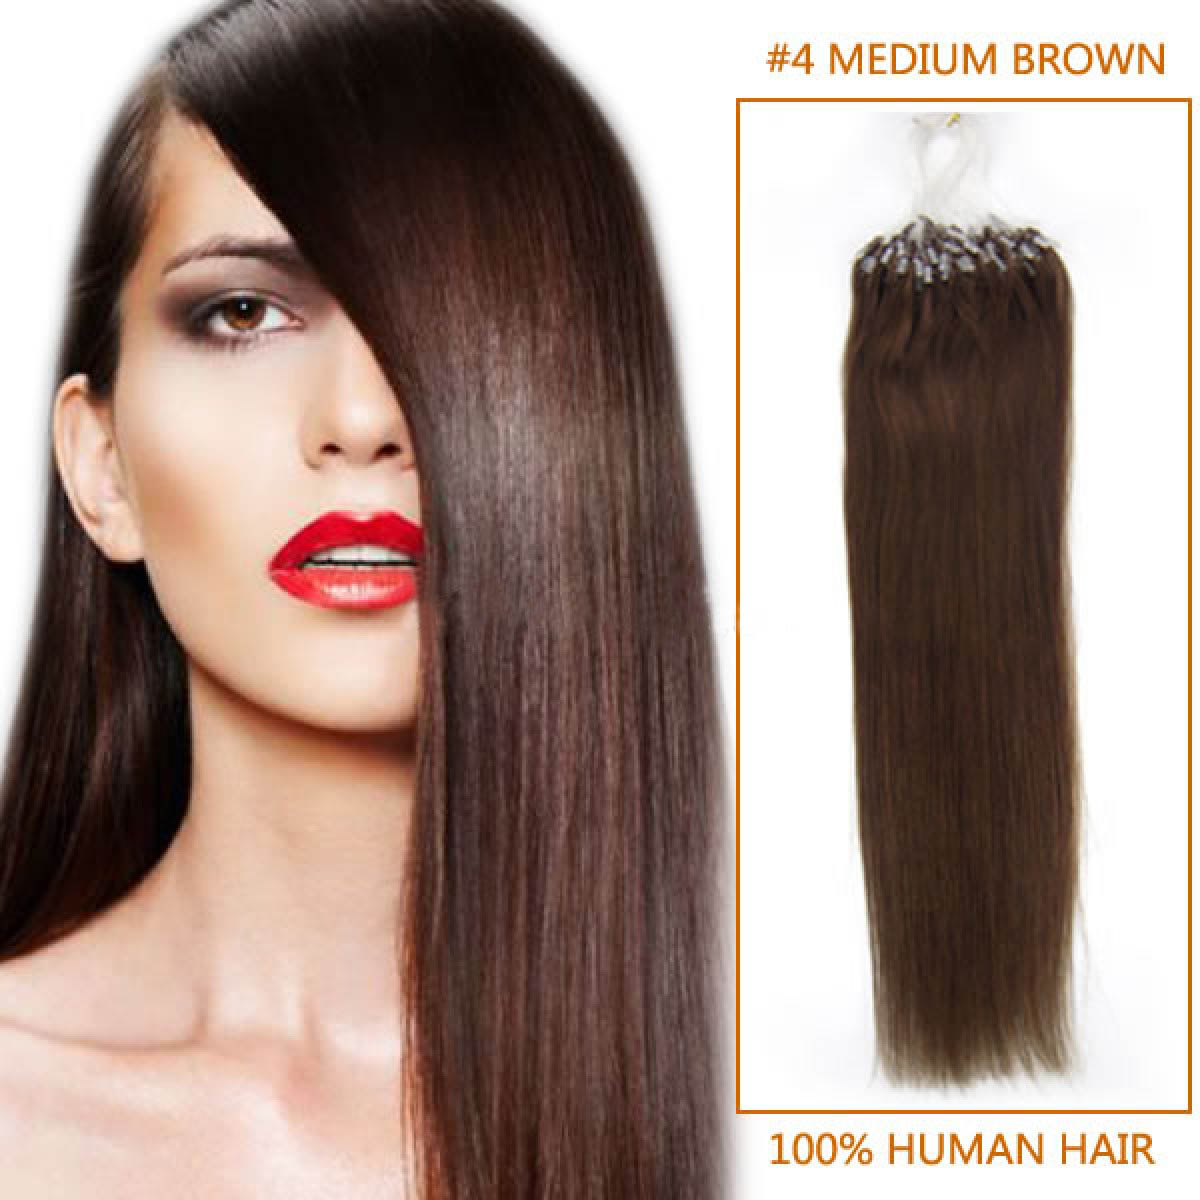 26 Inch 4 Medium Brown Micro Loop Human Hair Extensions 100s